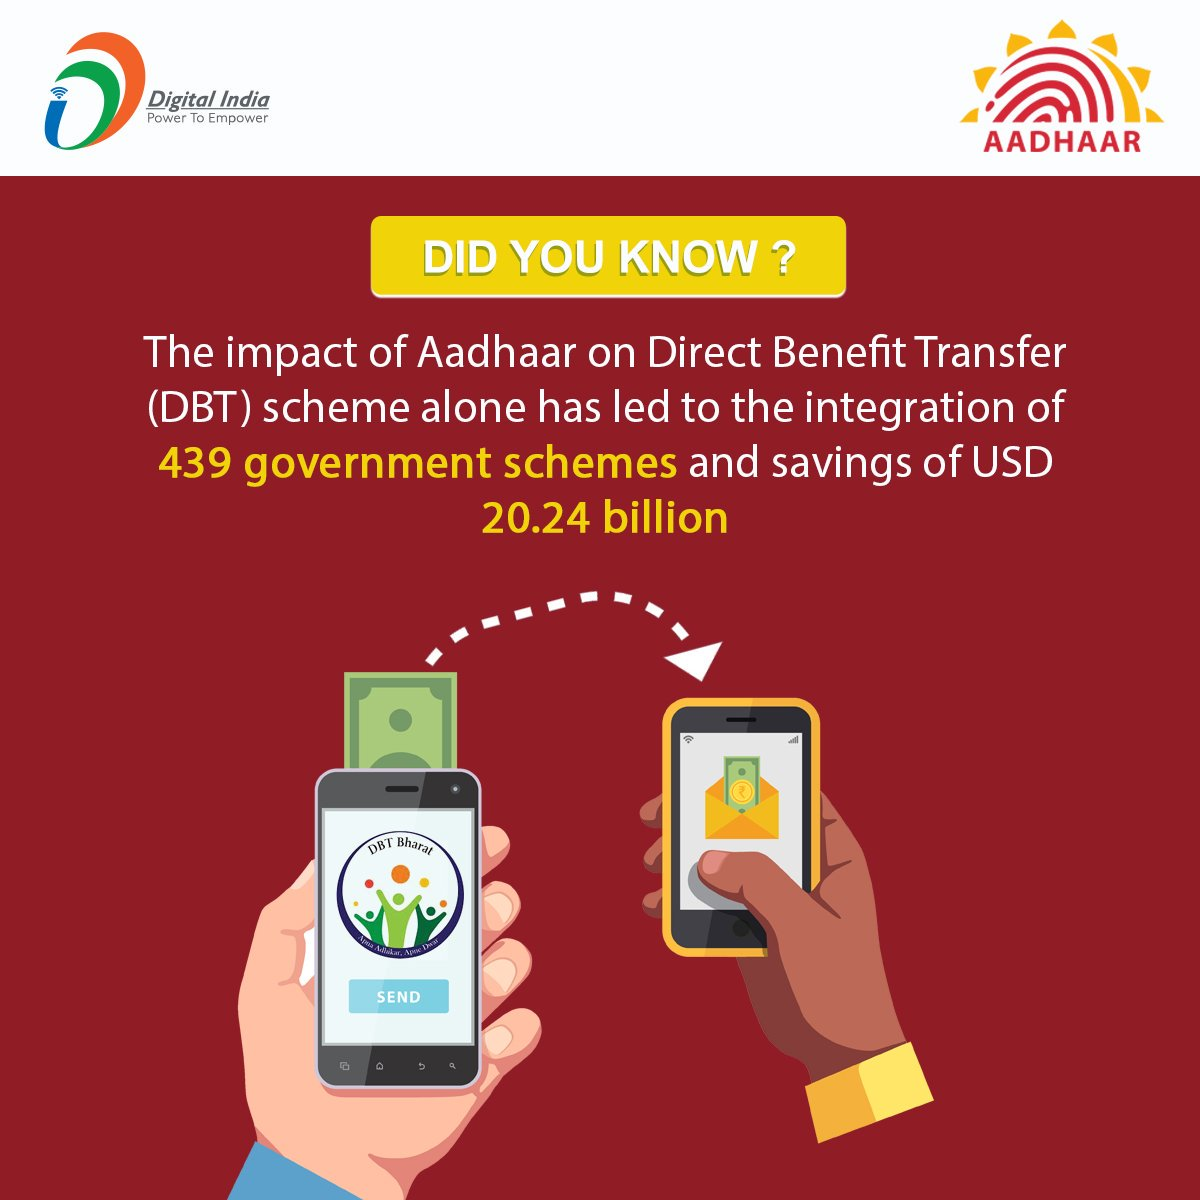 #DidYouKnow | Aadhaar is the largest de-duplication mechanism for government schemes in the country. As a fact, the parallel coverage of Aadhaar, Jan Dhan Yojana & mobile connections has molded the digital profile of India to a significant level.   #DigitalIndia #Aadhaar <br>http://pic.twitter.com/5bAV3wYwXi